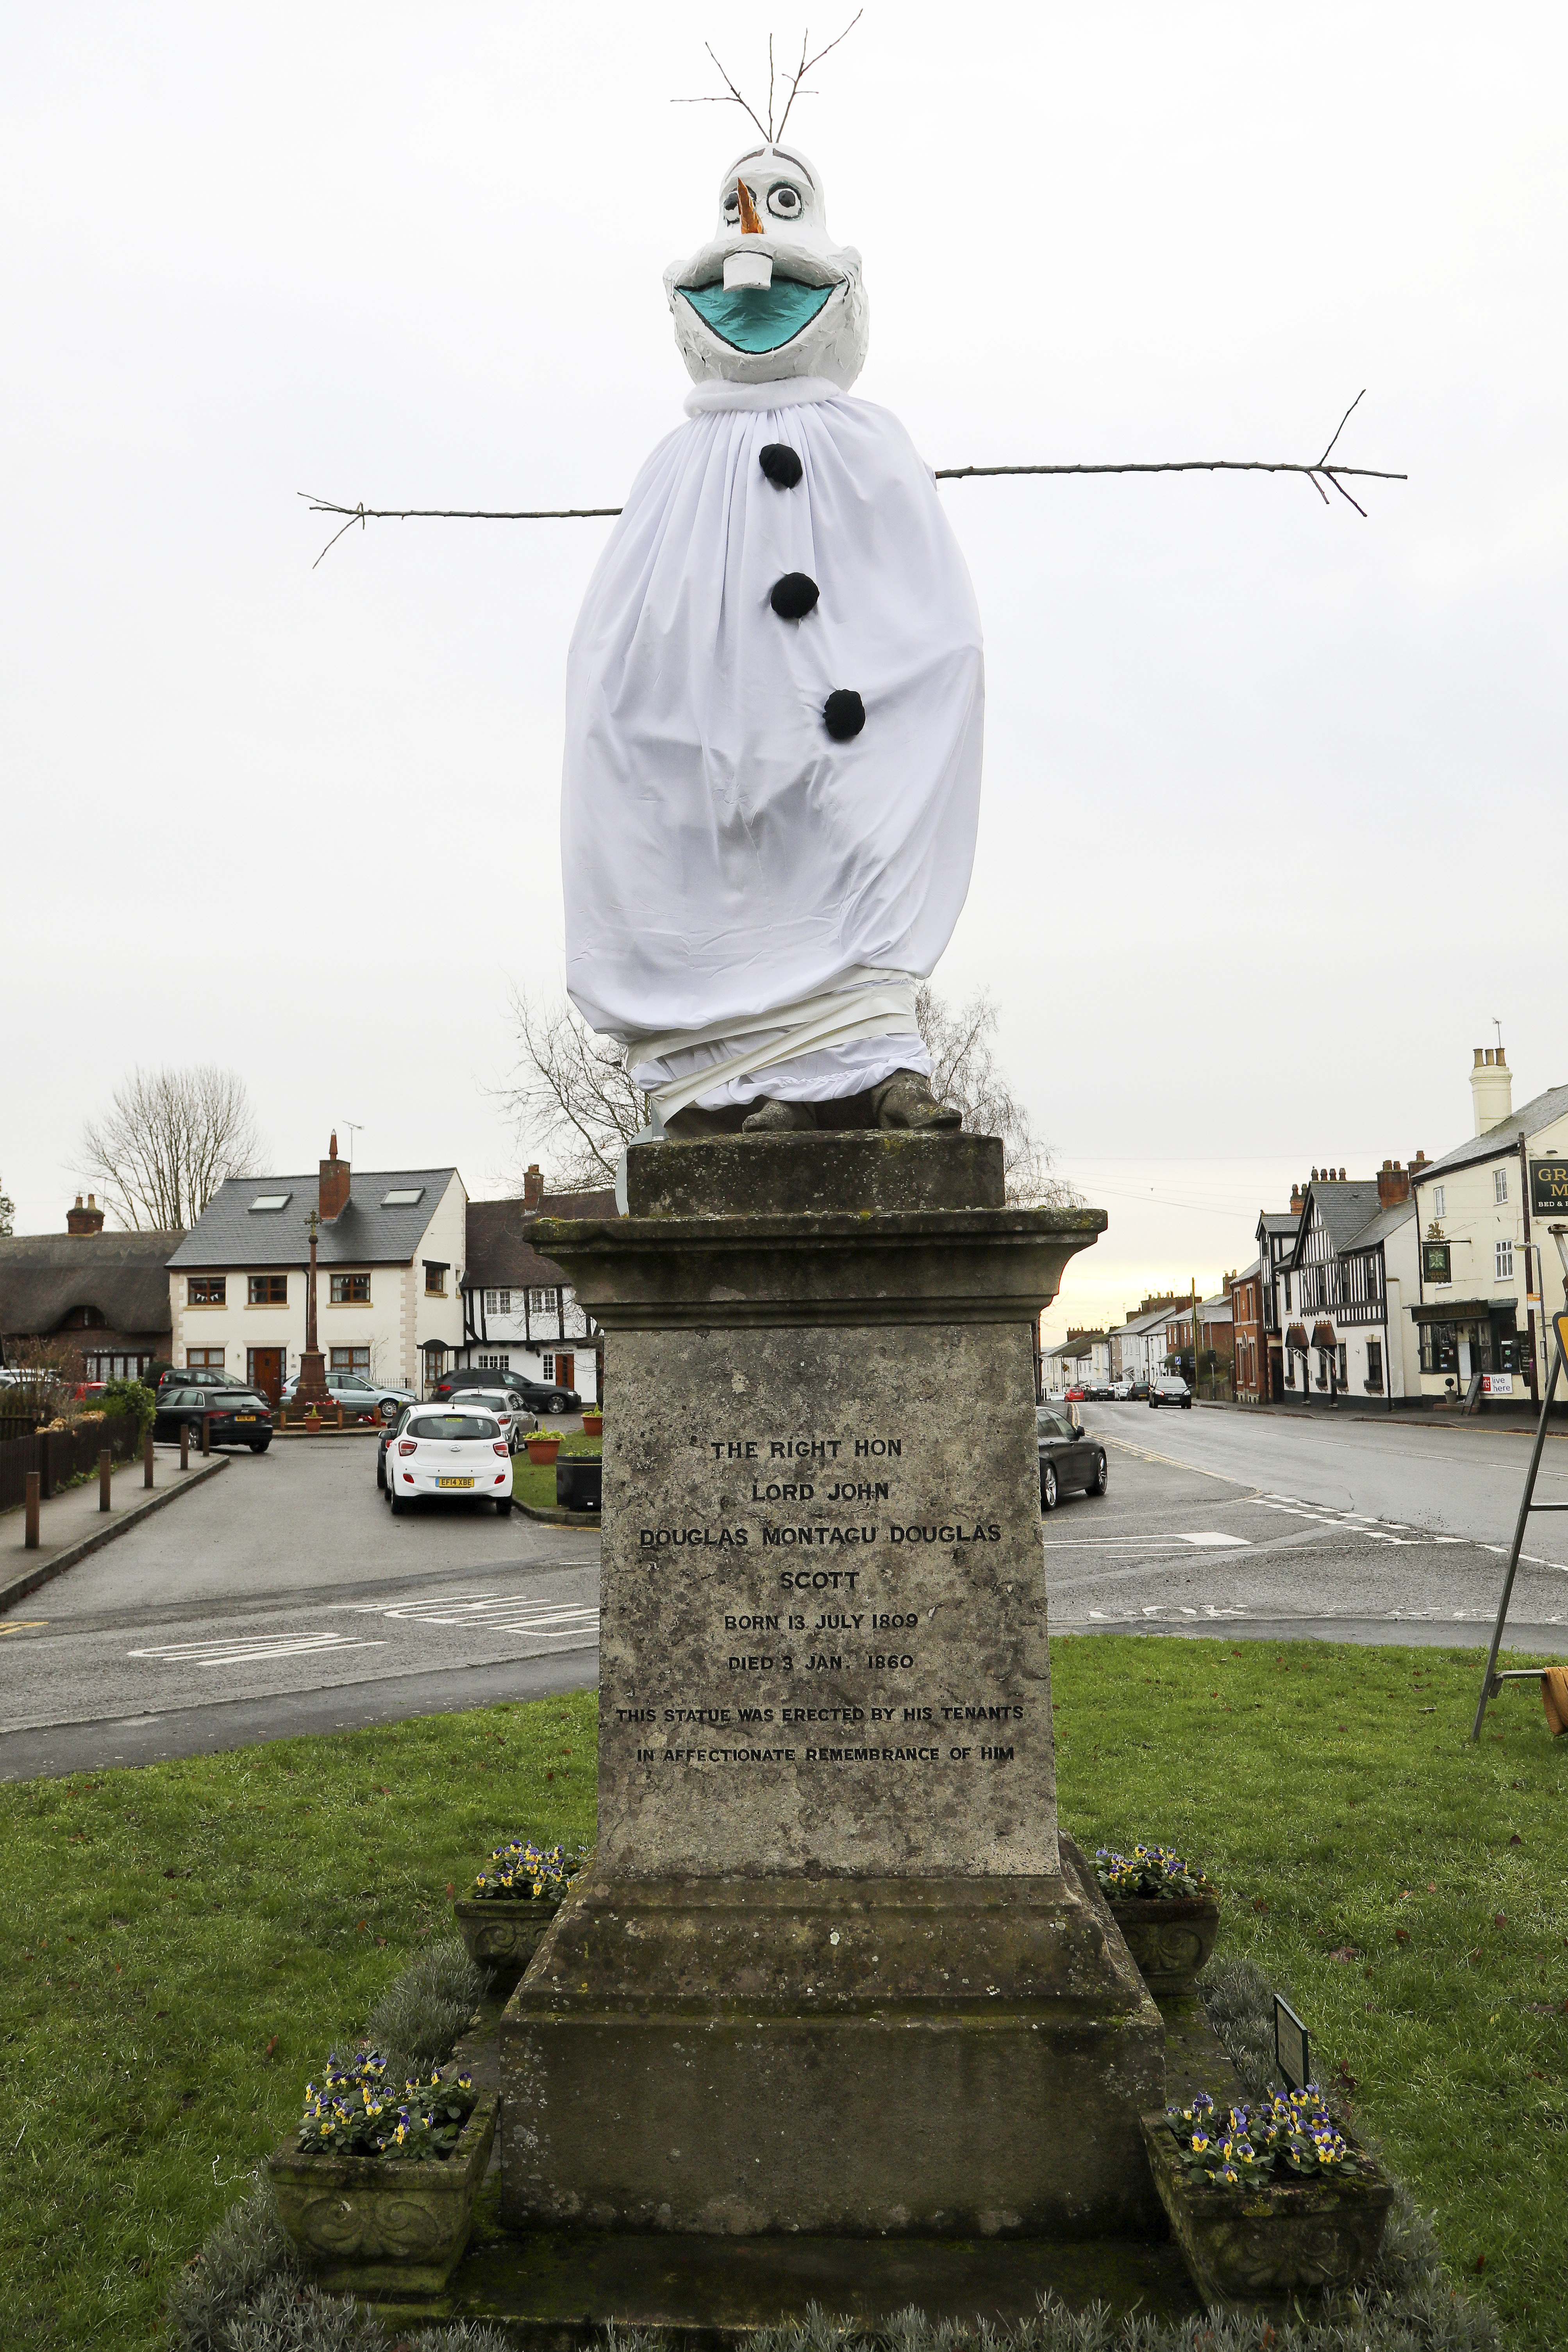 A village is hunting festive pranksters who have turned a statue of its most famous son into PEPPA PIG. The statue of Lord John Scott, who died in 1860, is a Christmas target for jokers in Dunchurch, near Rugby, Warks. Hilarious pictures show the monument draped in a pink sheet with arms stretched out and a huge pink papier mache head resembling kids' TV favourite. The statue has previously been turned into Harry Potter, Shrek, Happy Feet, Pikachu, Homer Simpson, an Olympic athlete and The Grinch in an annual tradition dating back to the 1970s.